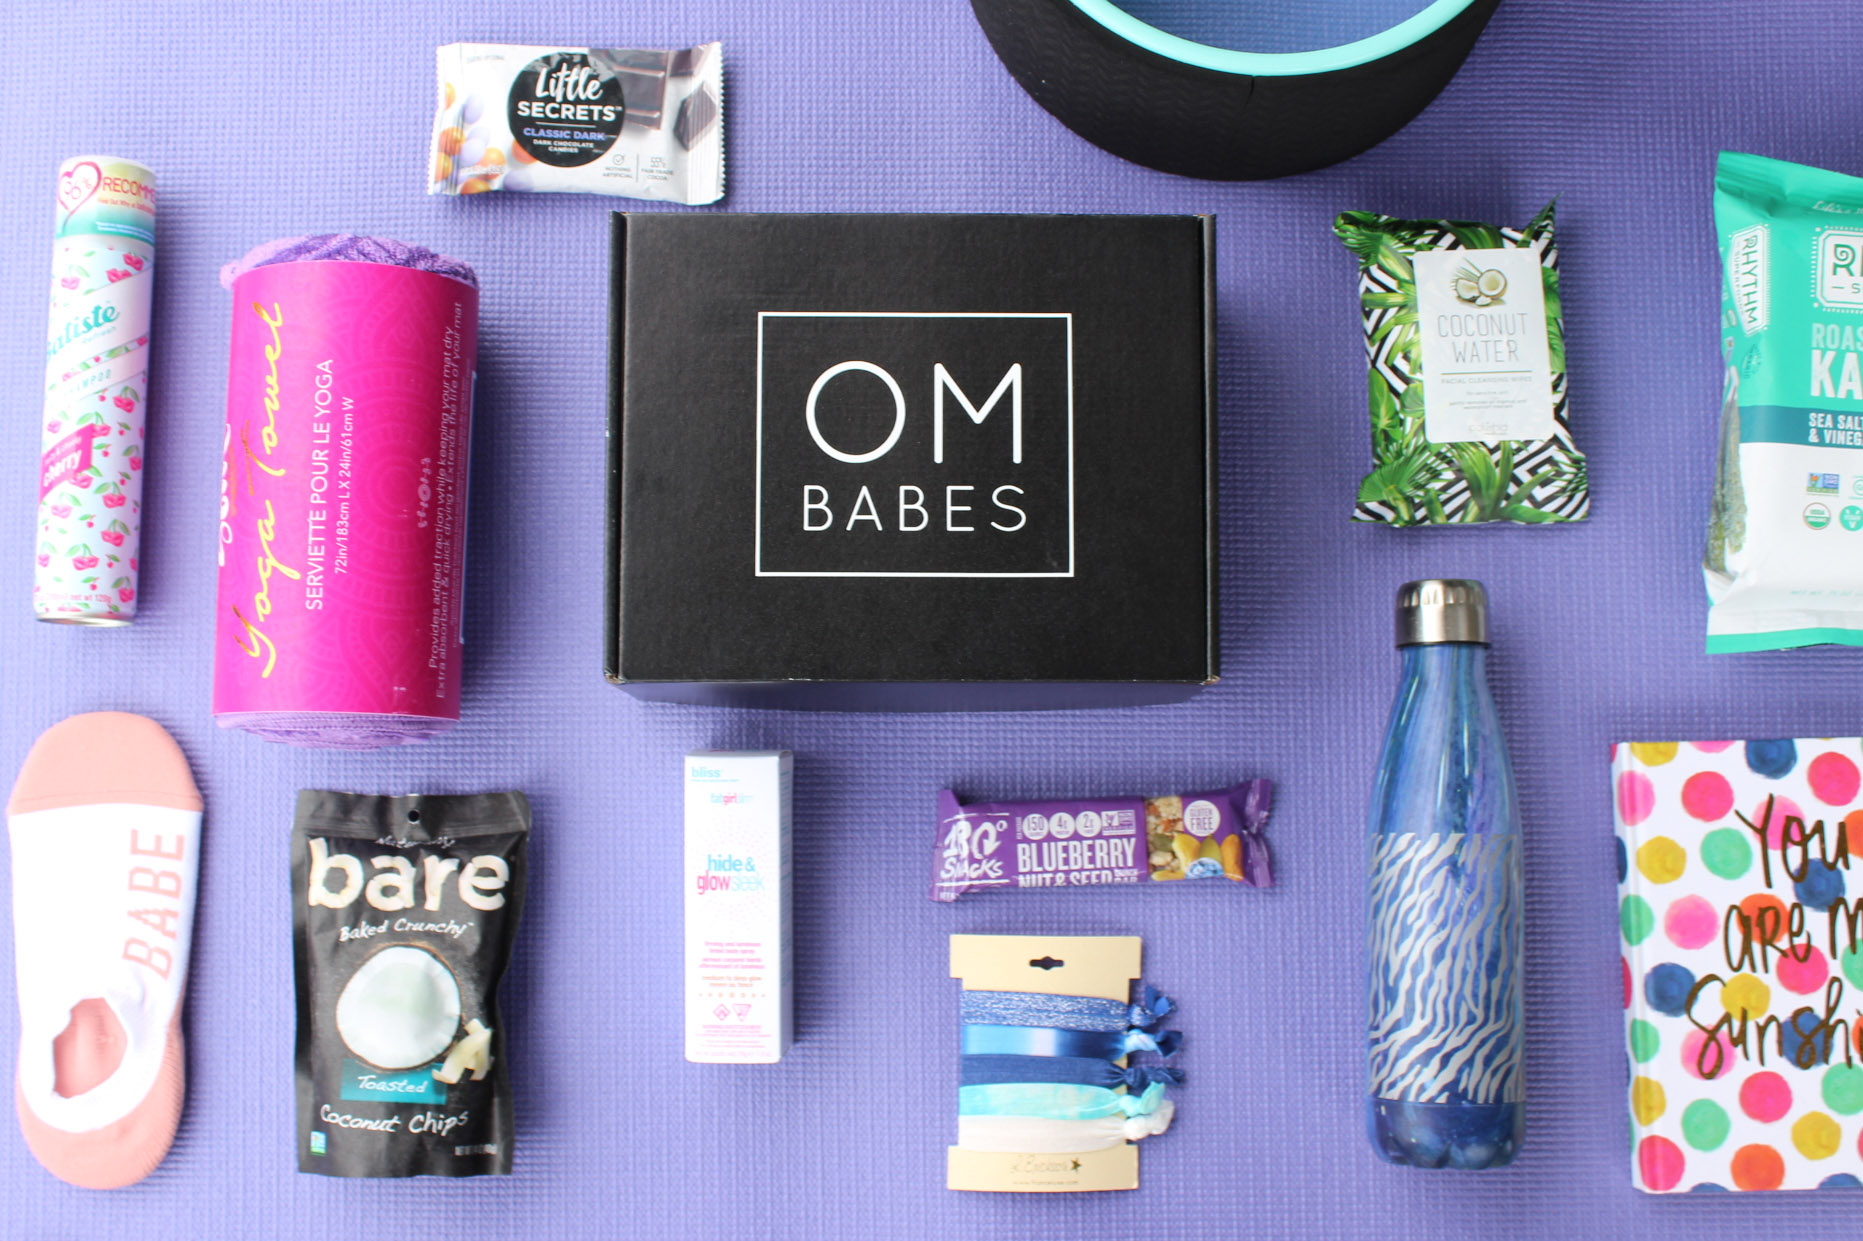 OmBabes Subscription Box